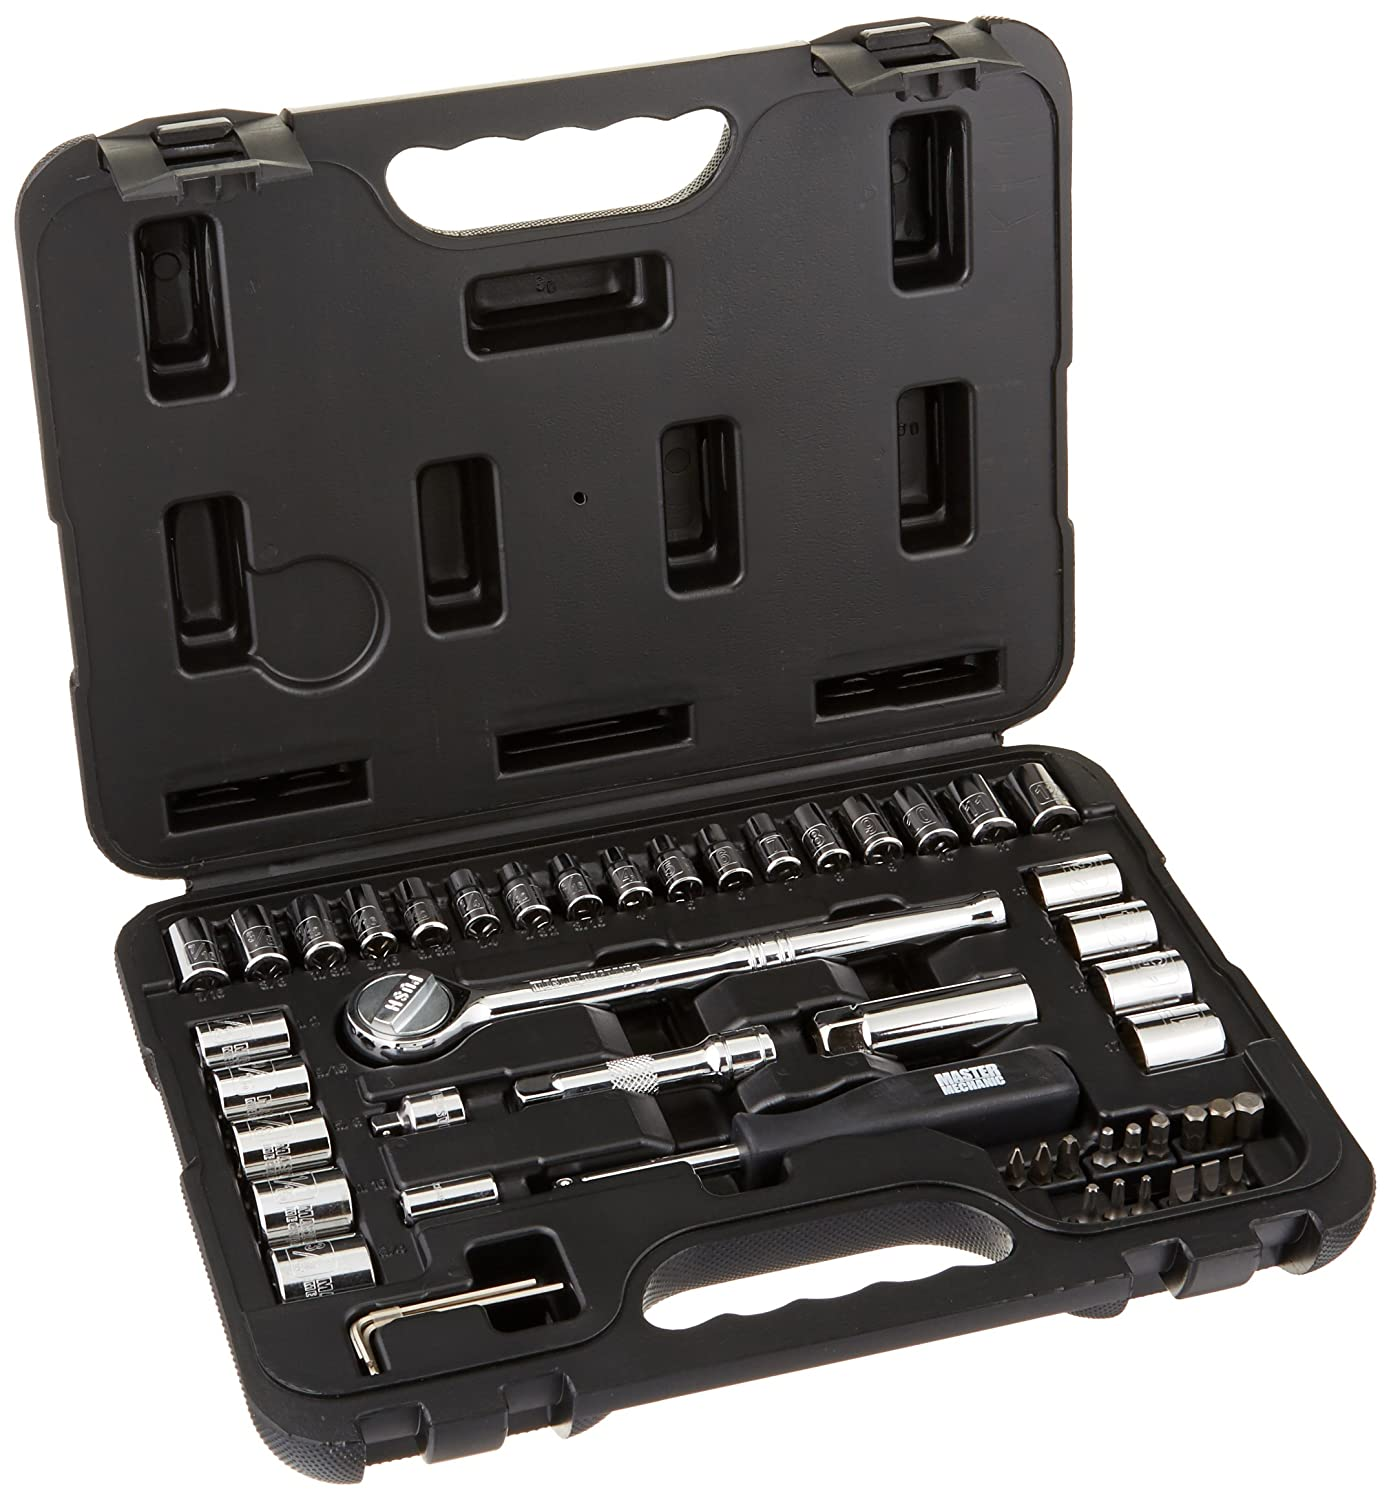 APEX TOOL GROUP-ASIA 117850 Master Mechanic Mutitool Accessories (50 Piece), 1/4 x 3/8 by Apex Tool Group B002T4JMT0